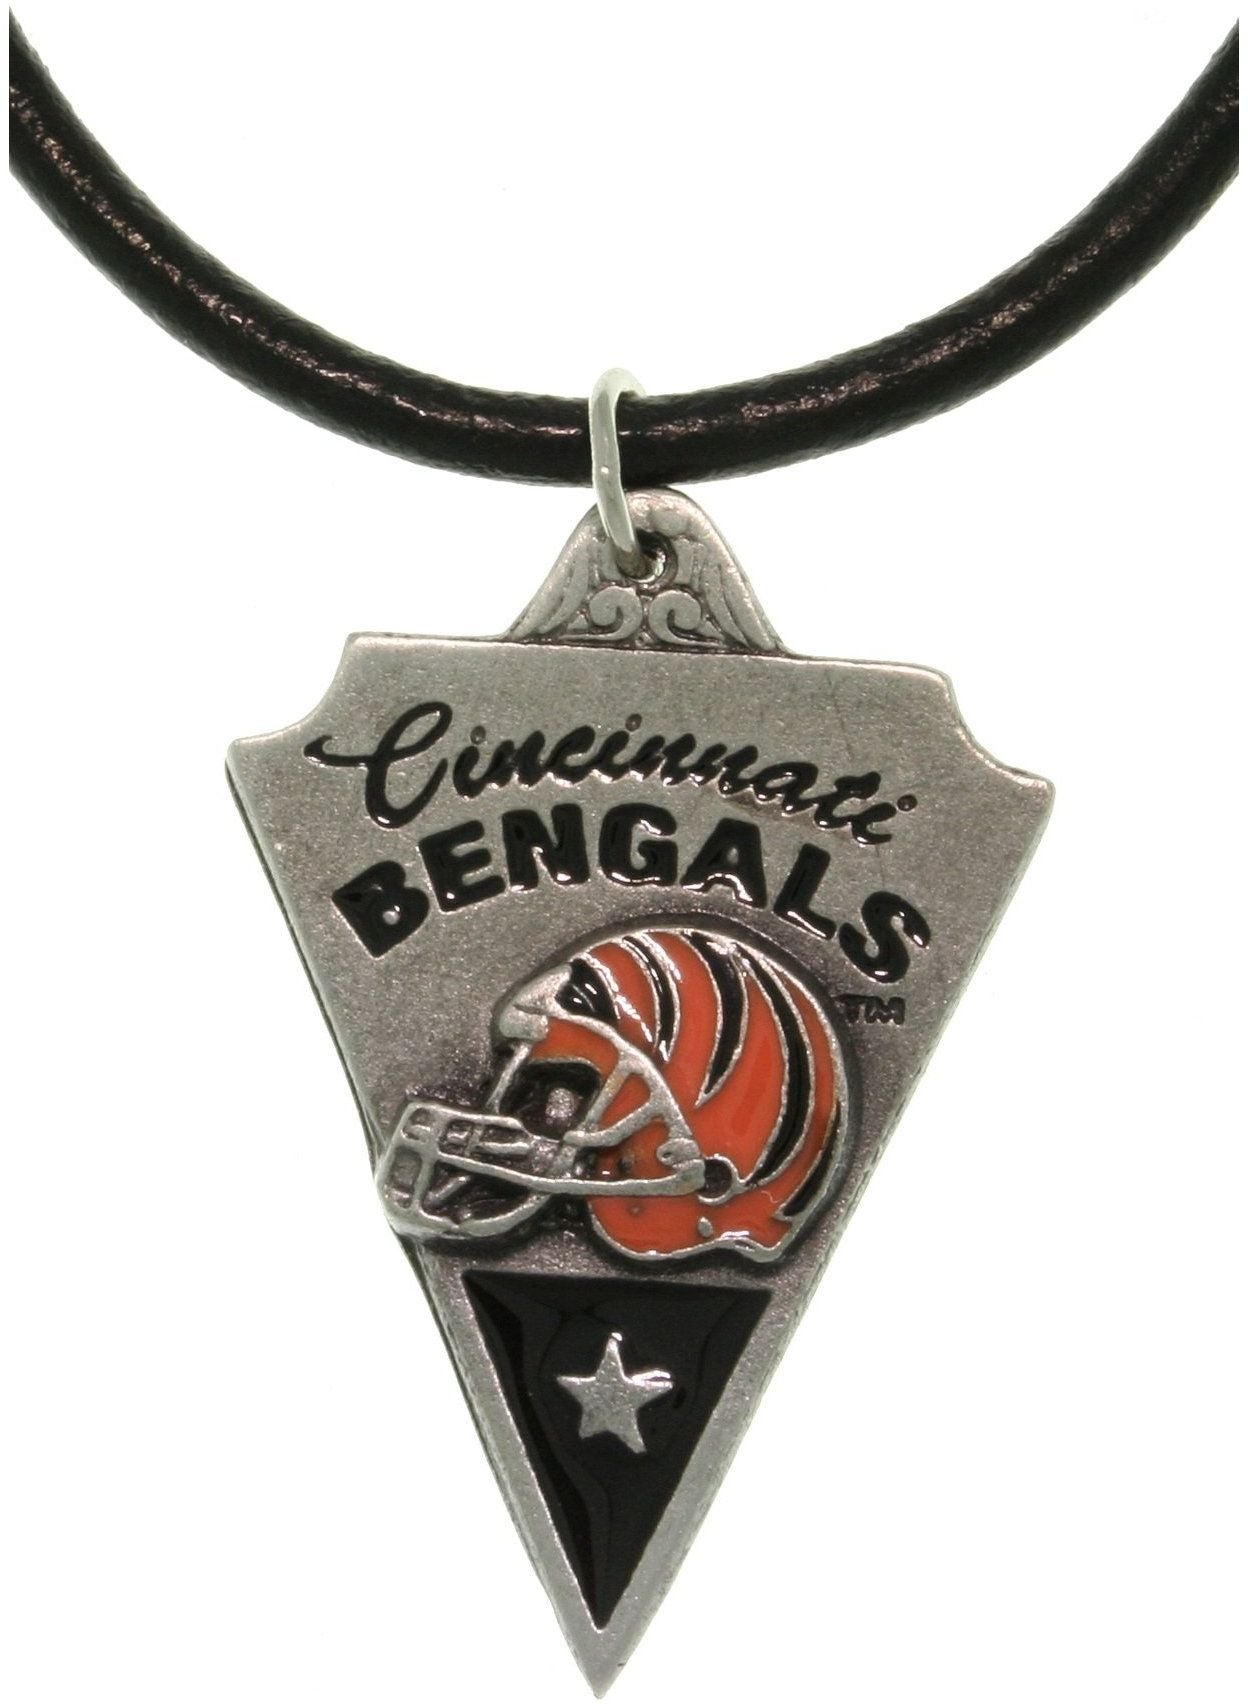 Jewelry Trends Pewter Cincinnati Bengals NFL Pennant Pendant on Black Leather Necklace